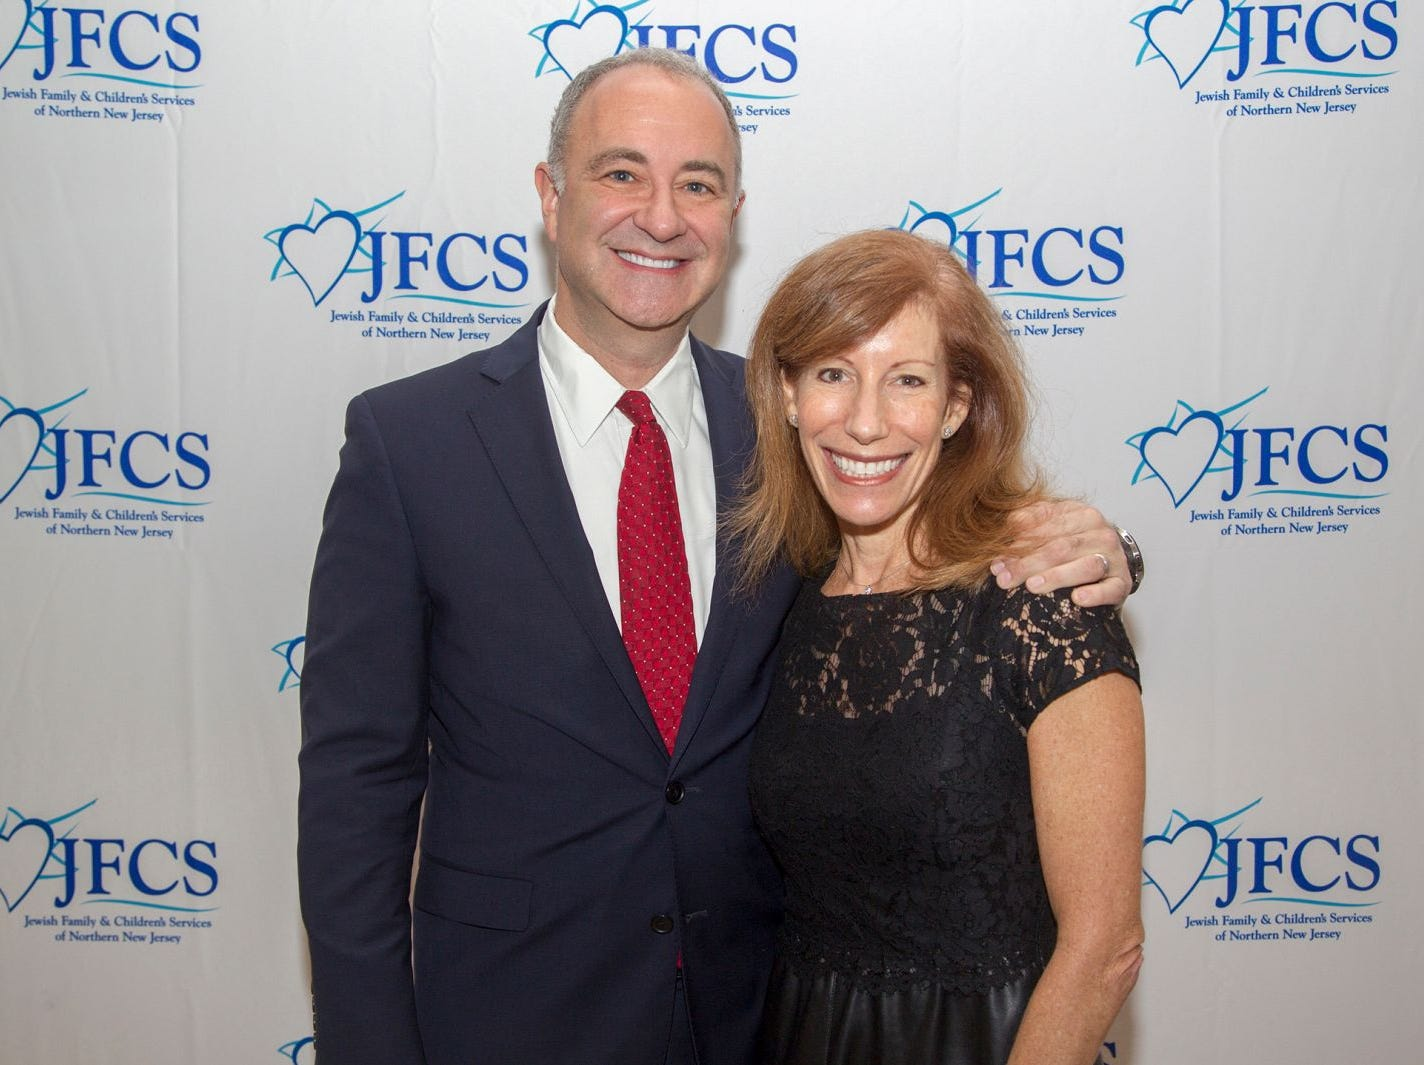 Deborah and Gary Glasser. Jewish Family & Children's Services of Northern New Jersey held its annual gala at the Edgewood Country Club in River Vale. The evening honored Shira Feuerstein, Jayne Petak, and Alan Scharfstein for their leadership, support, and dedication. 11/18/2018